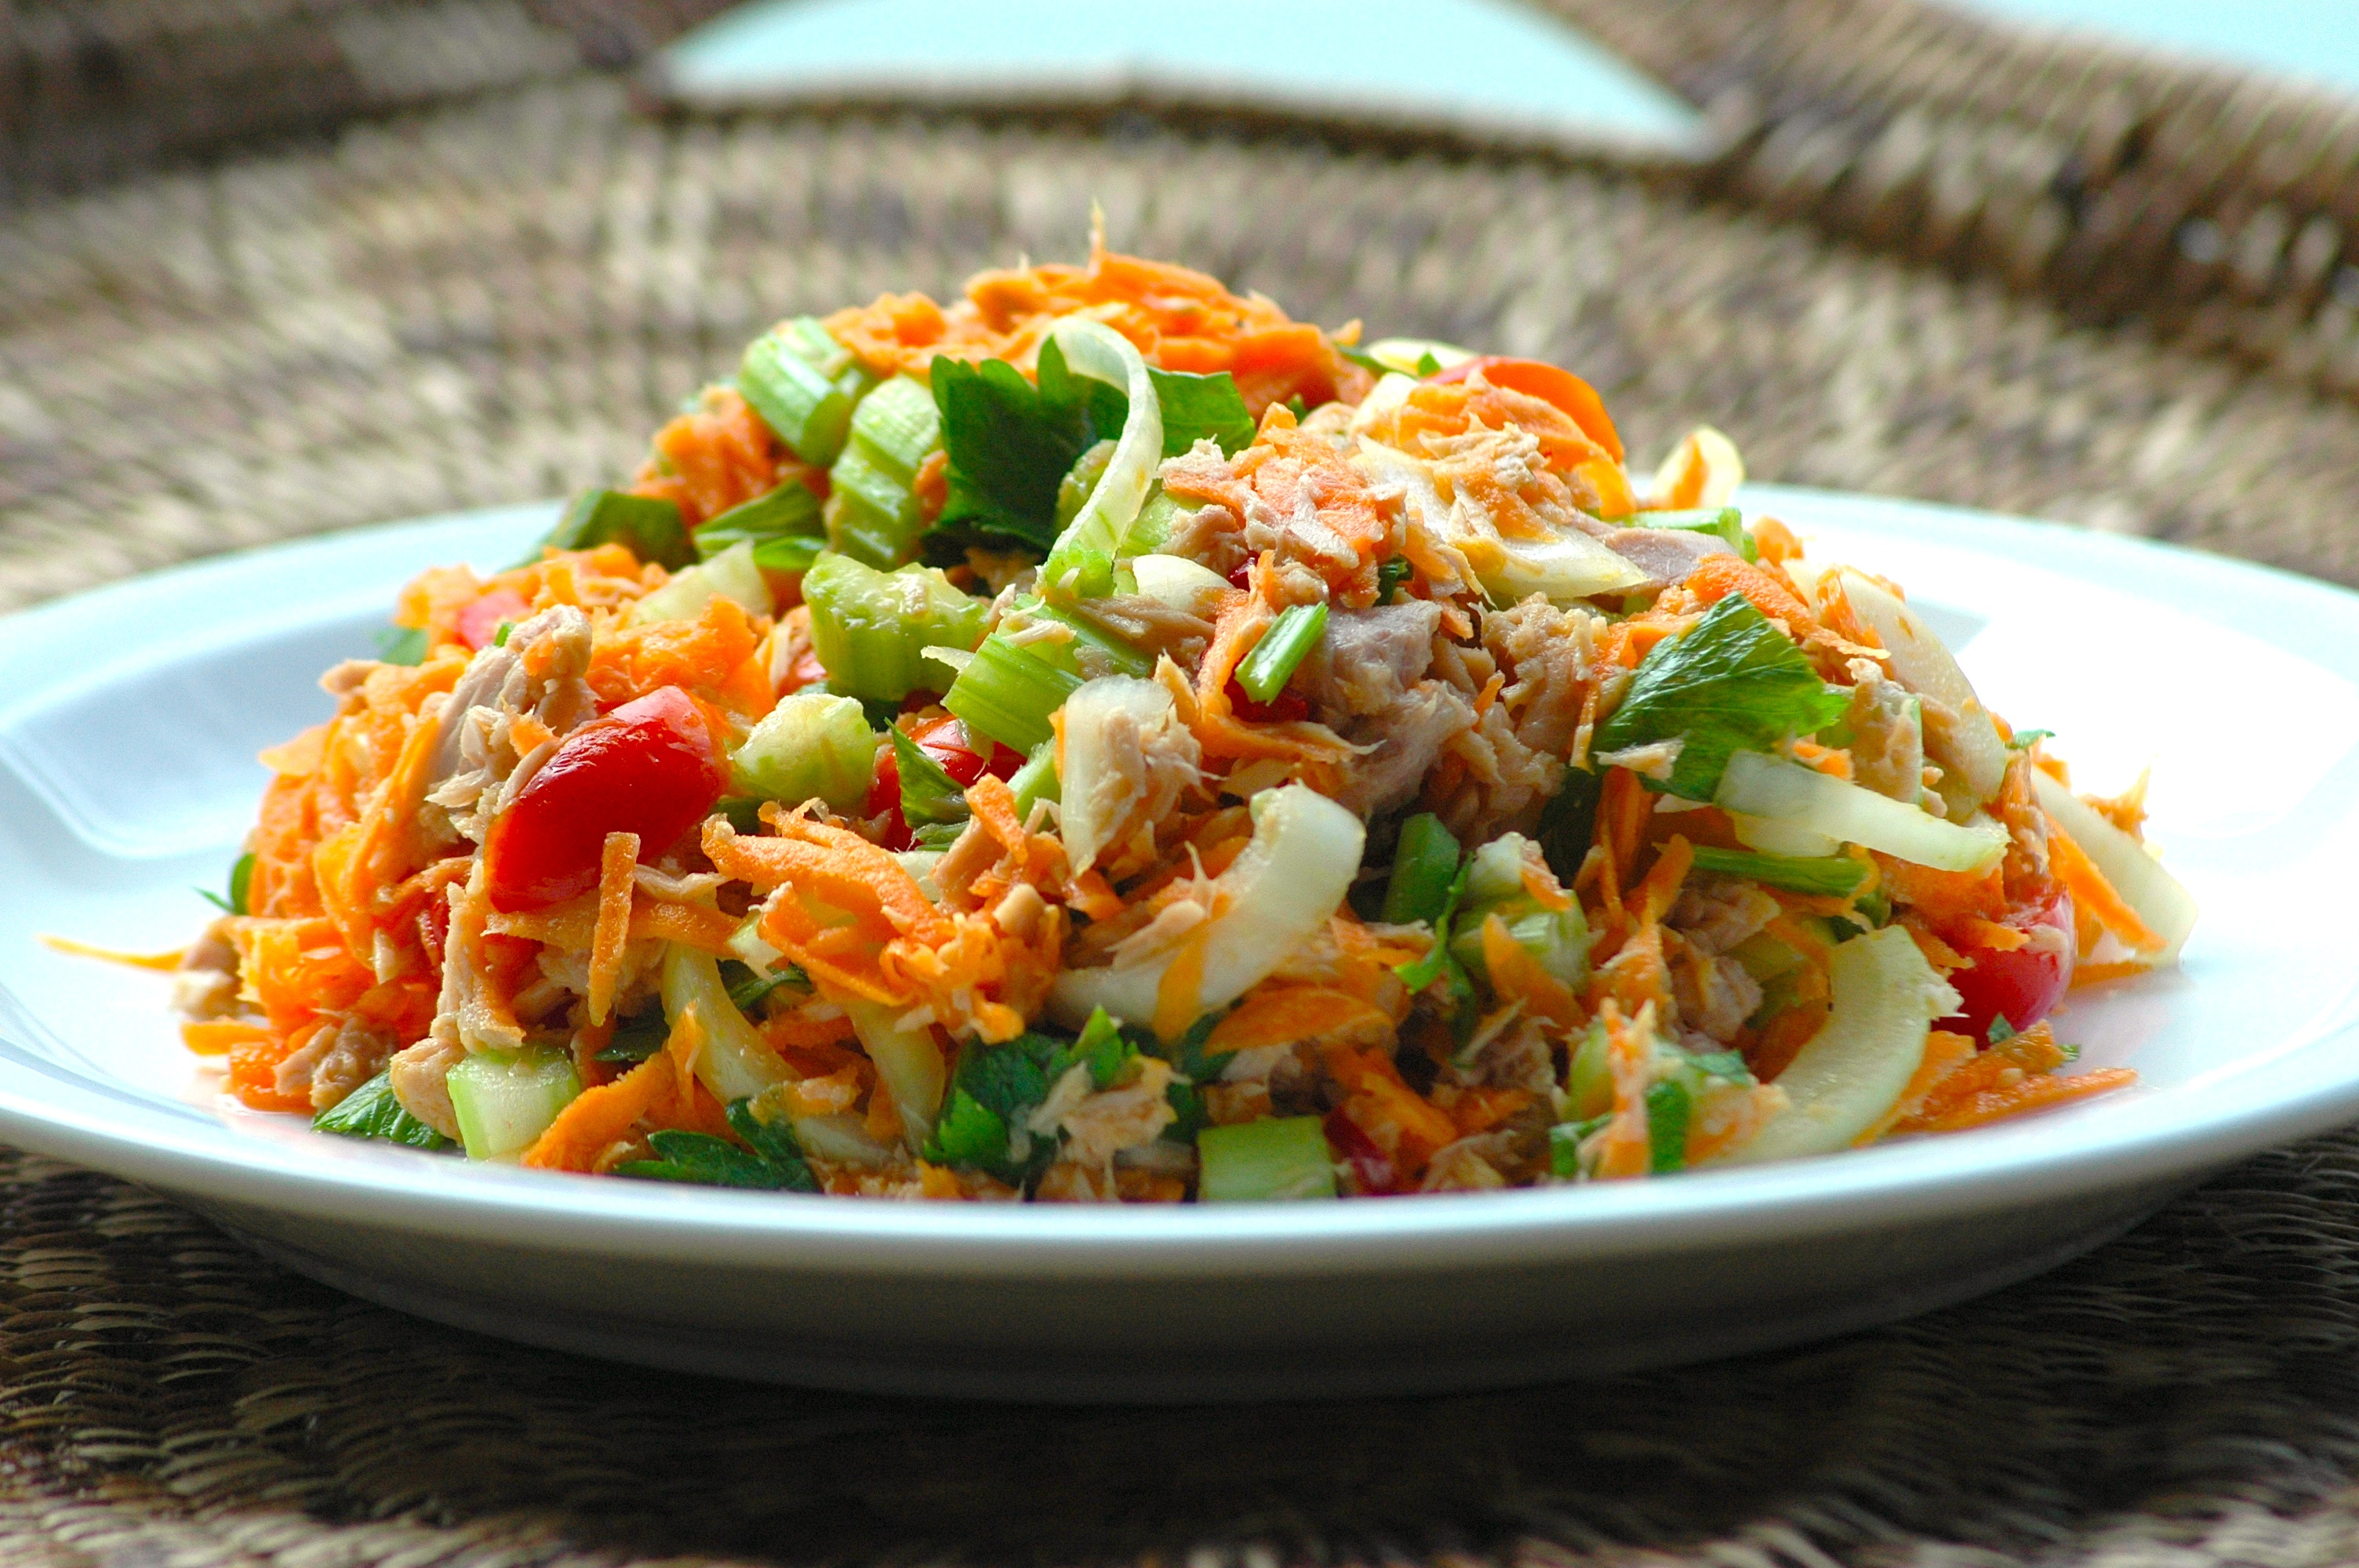 Carrot tuna salad 2